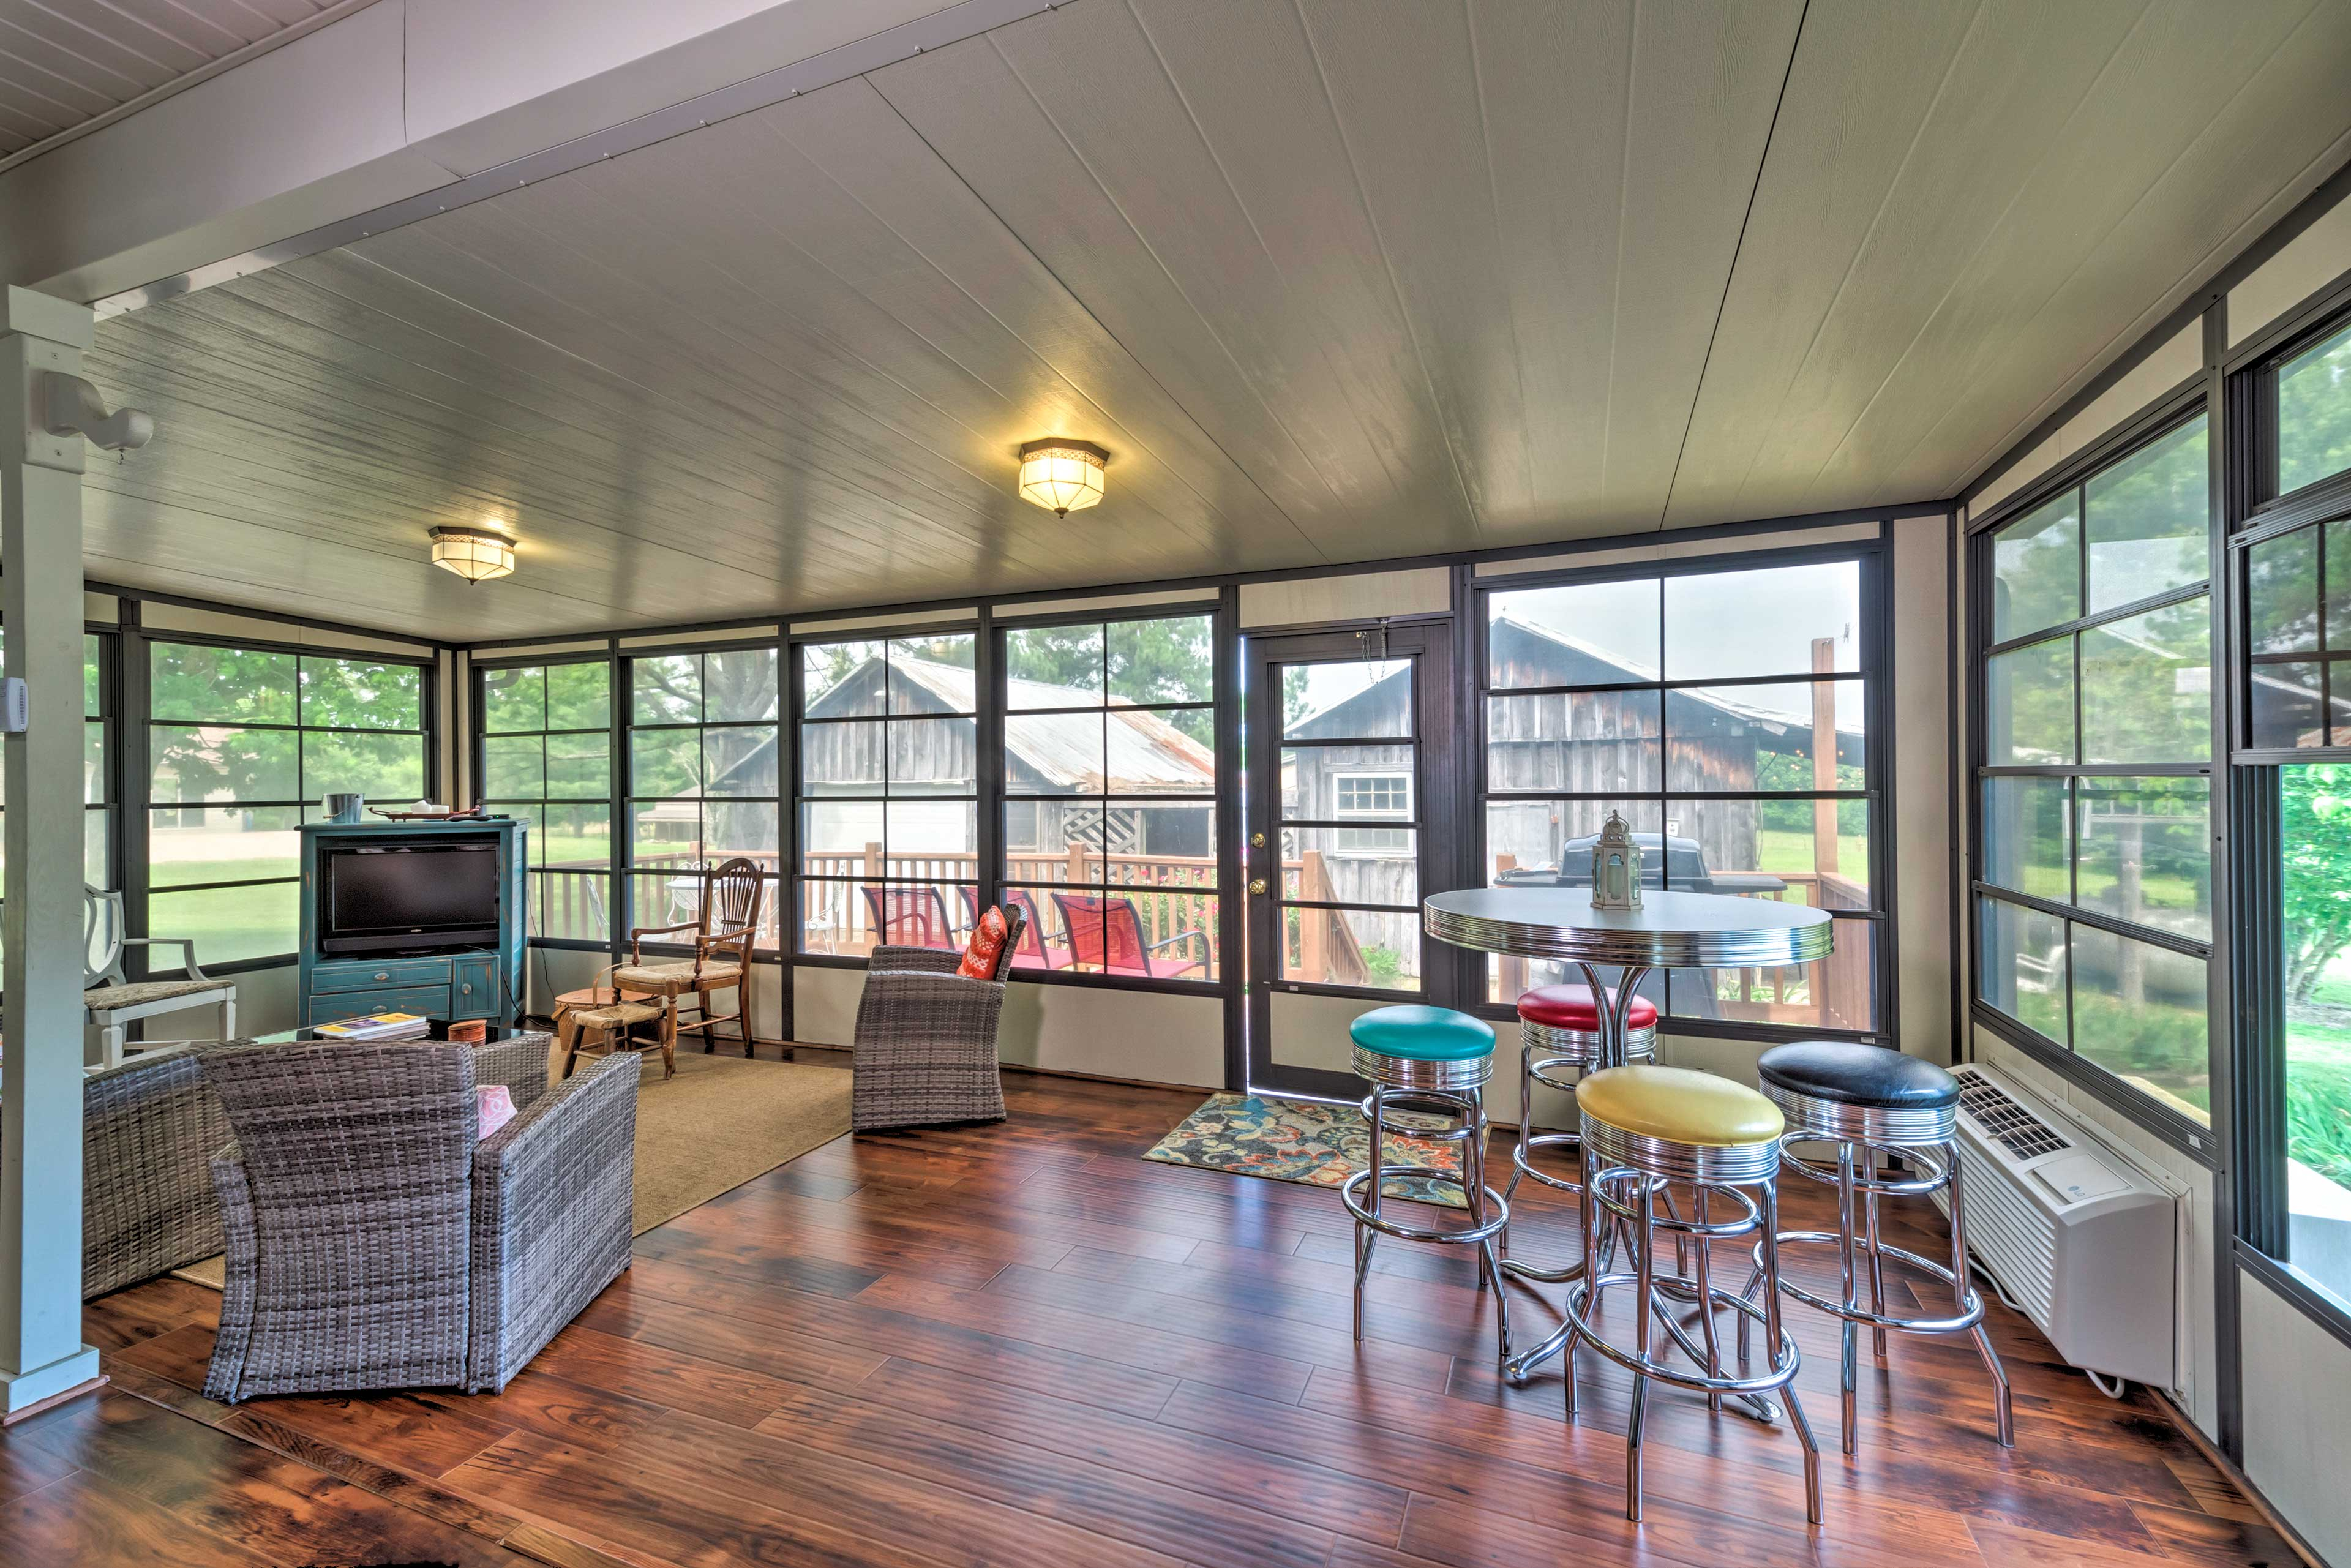 You'll also find a beautiful sunroom on the main level.